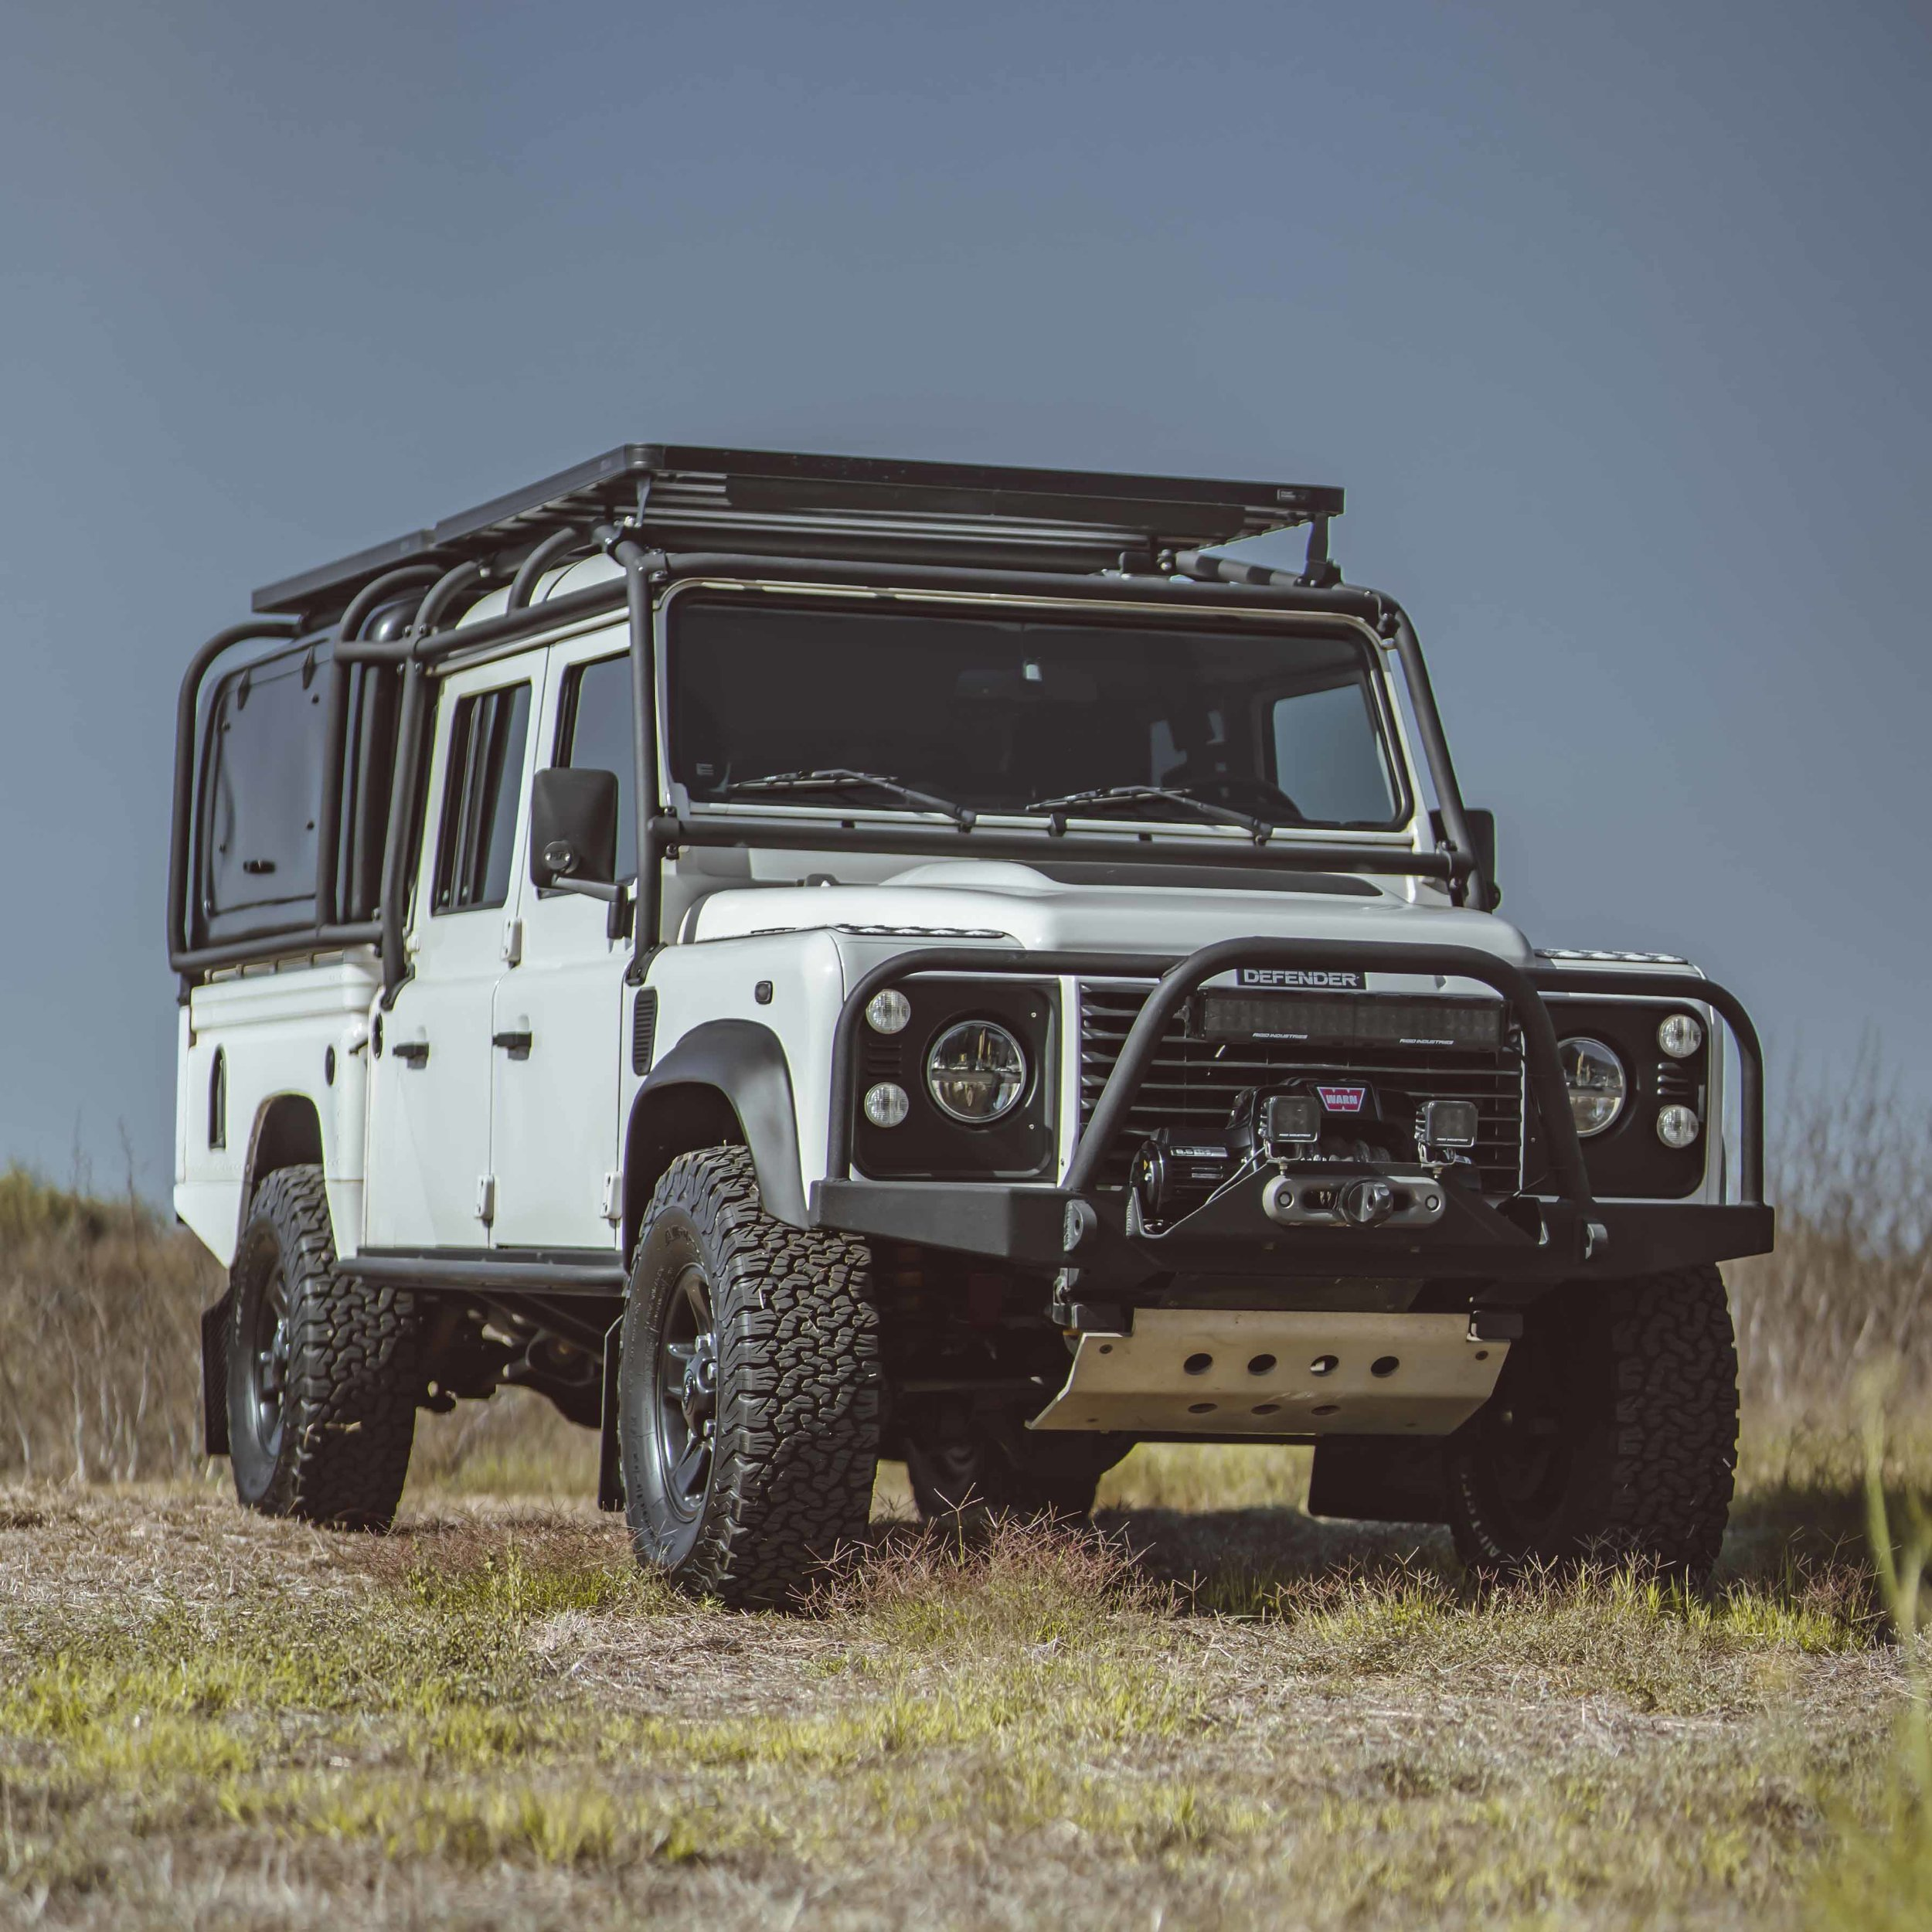 Land_Rover_130_Expedition_xlarge_0004_Layer 21.jpg